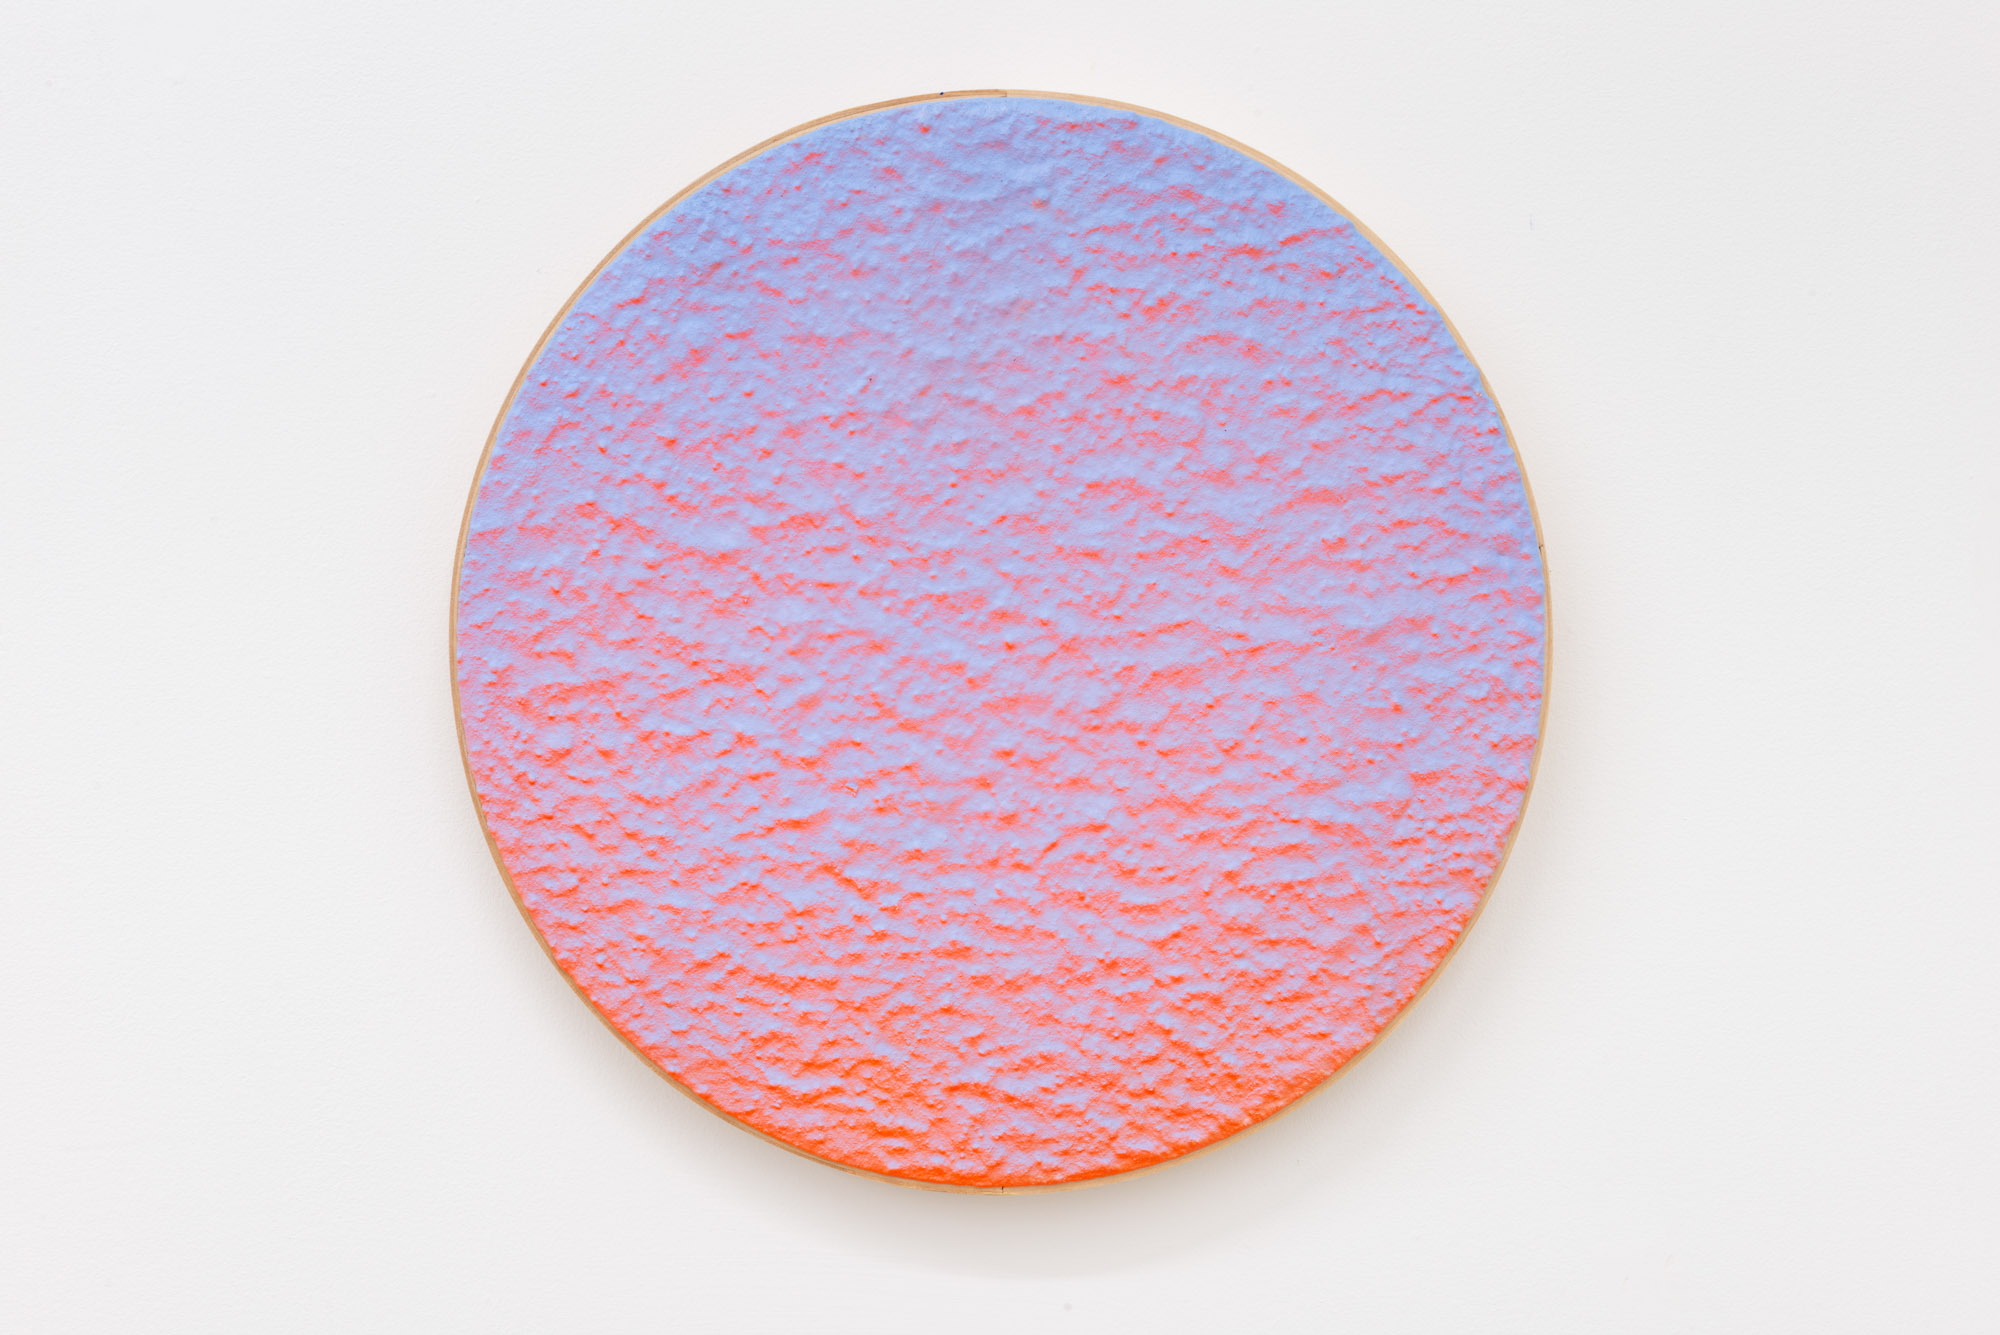 """Pierre Julien,  In the Deepest Oceans  - B015, 2018, stucco, acrylic and spray paint on wood panel, 16"""" diameter (41 cm)"""